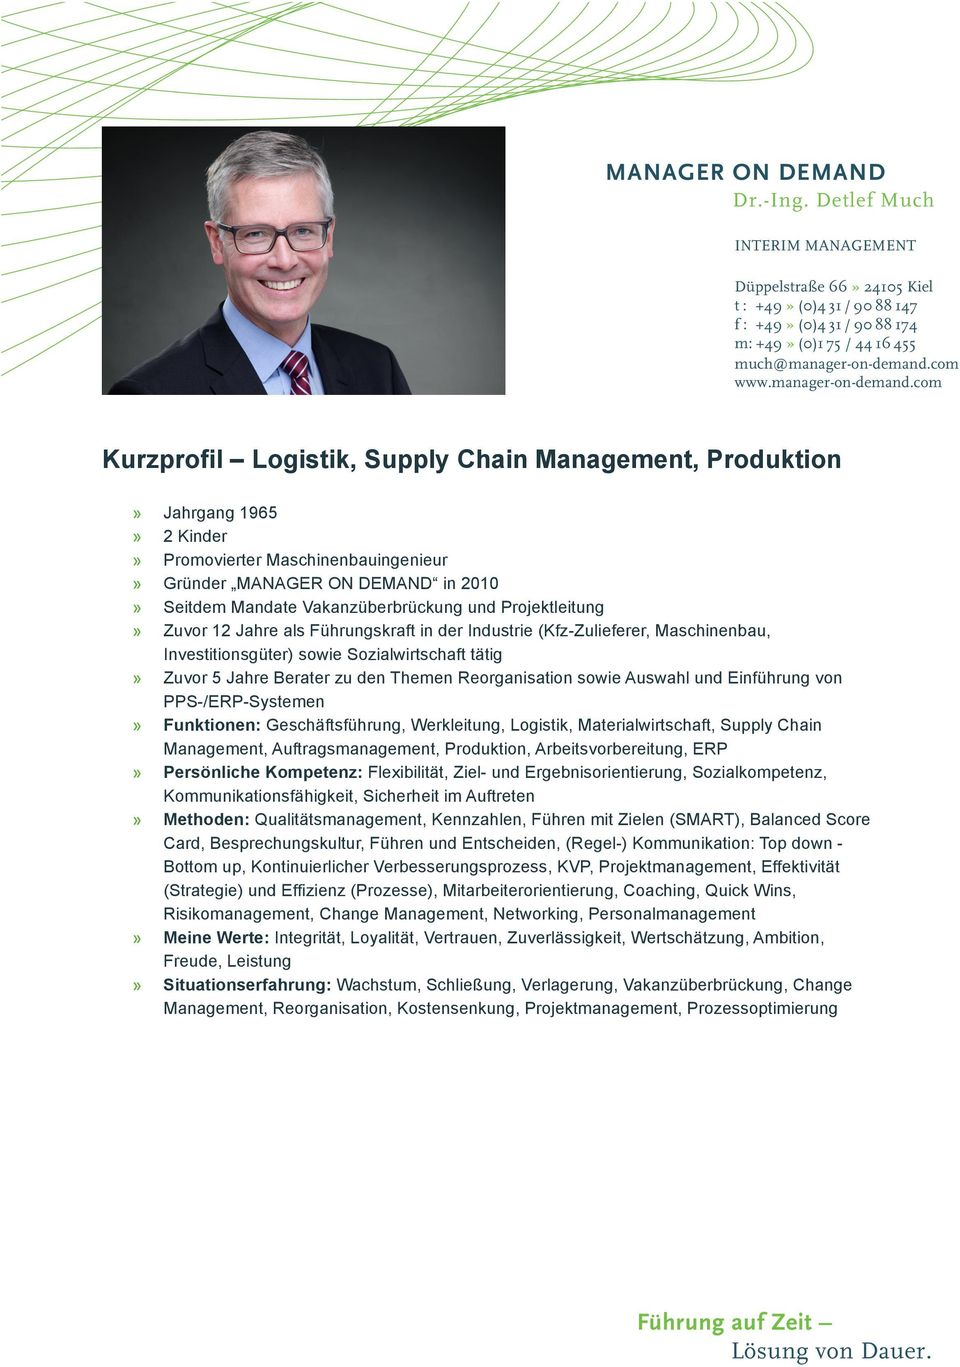 com Kurzprofil Logistik, Supply Chain Management, Produktion Jahrgang 1965 2 Kinder Promovierter Maschinenbauingenieur Gründer MANAGER ON DEMAND in 2010 Seitdem Mandate Vakanzüberbrückung und